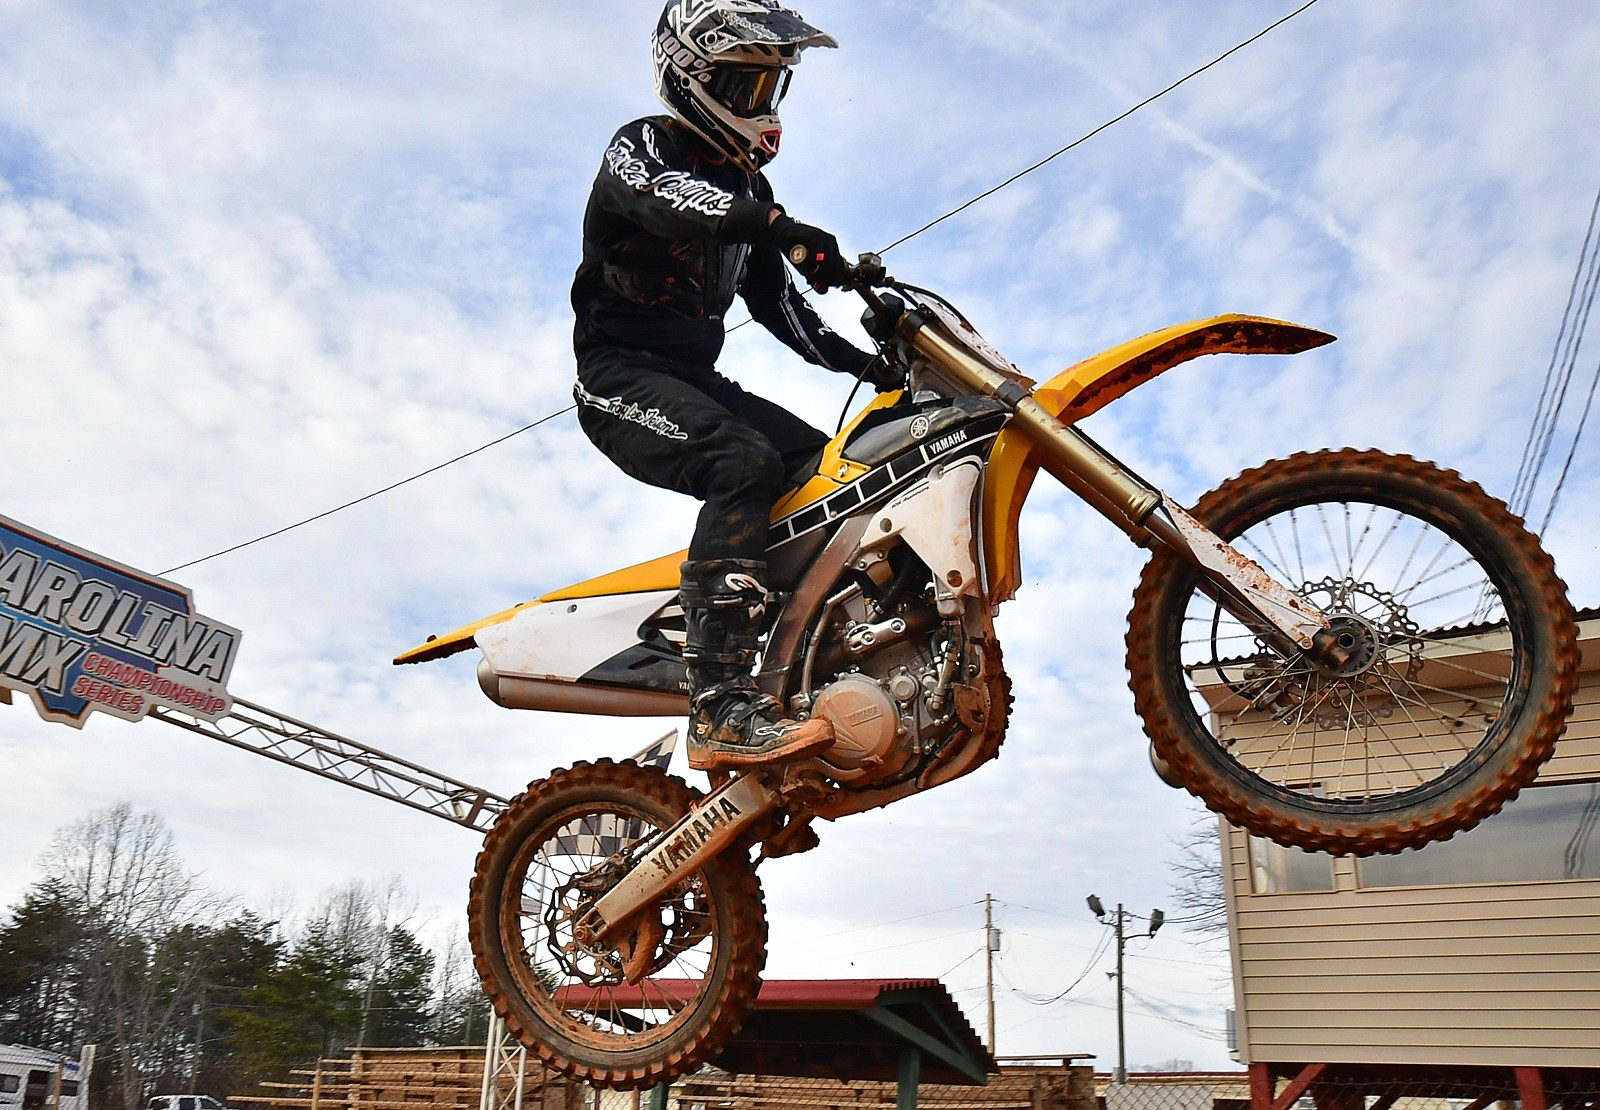 Finish Jump 2 - Poteat1985 - Motocross Pictures - Vital MX